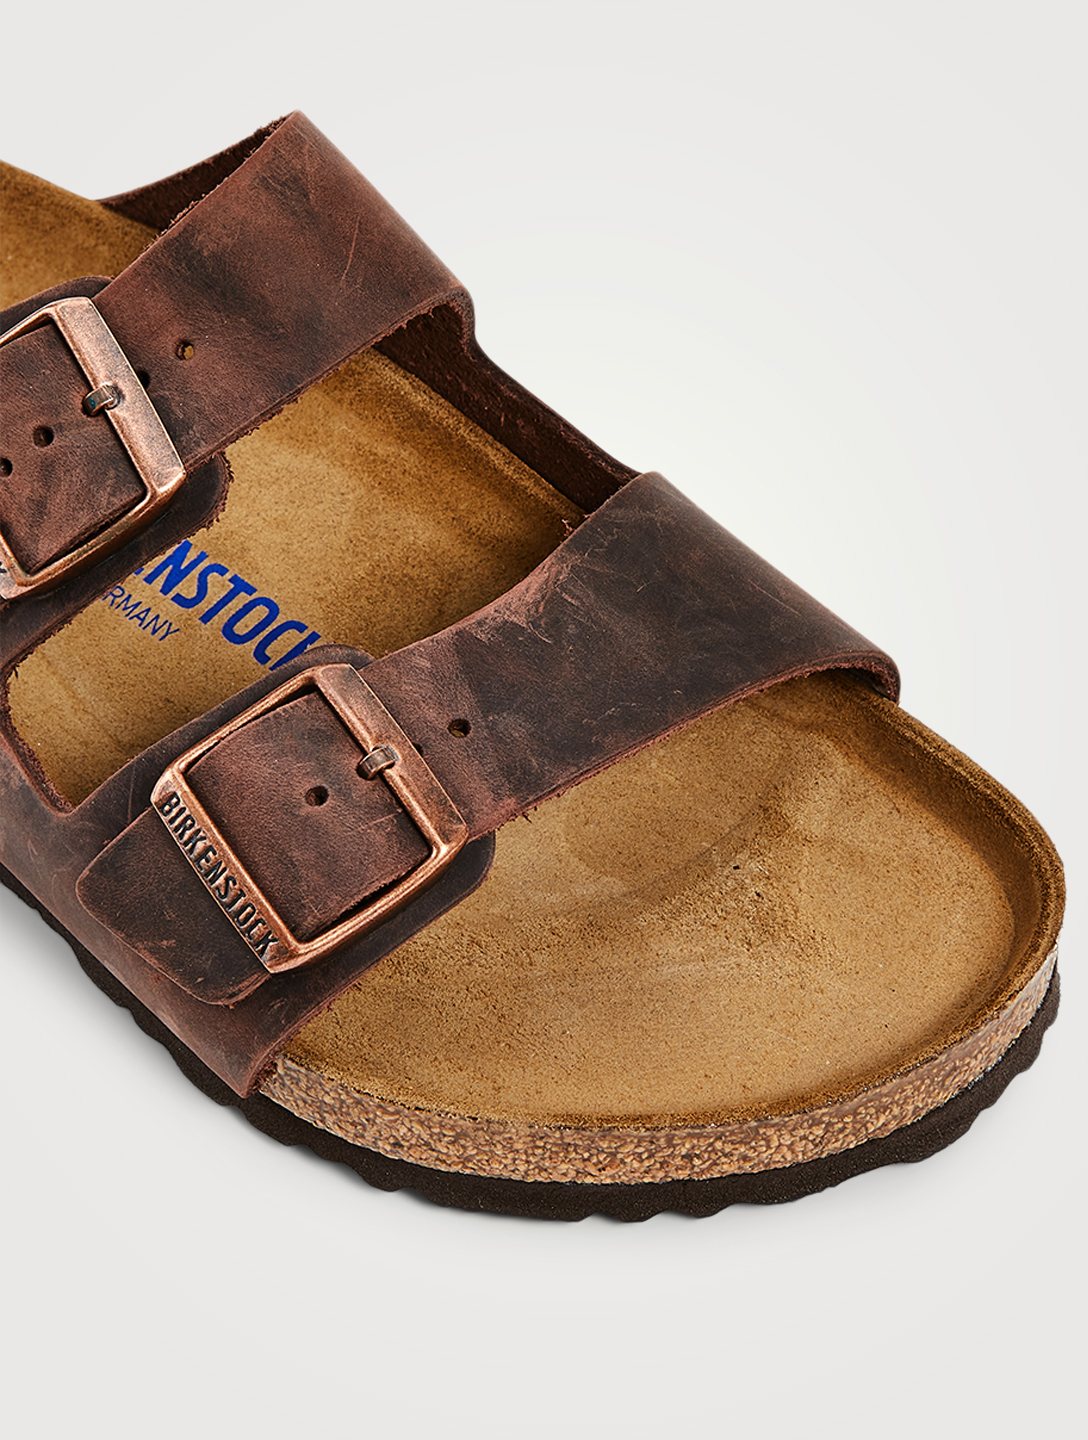 BIRKENSTOCK Arizona Soft Footbed Leather Slide Sandals Men's Brown